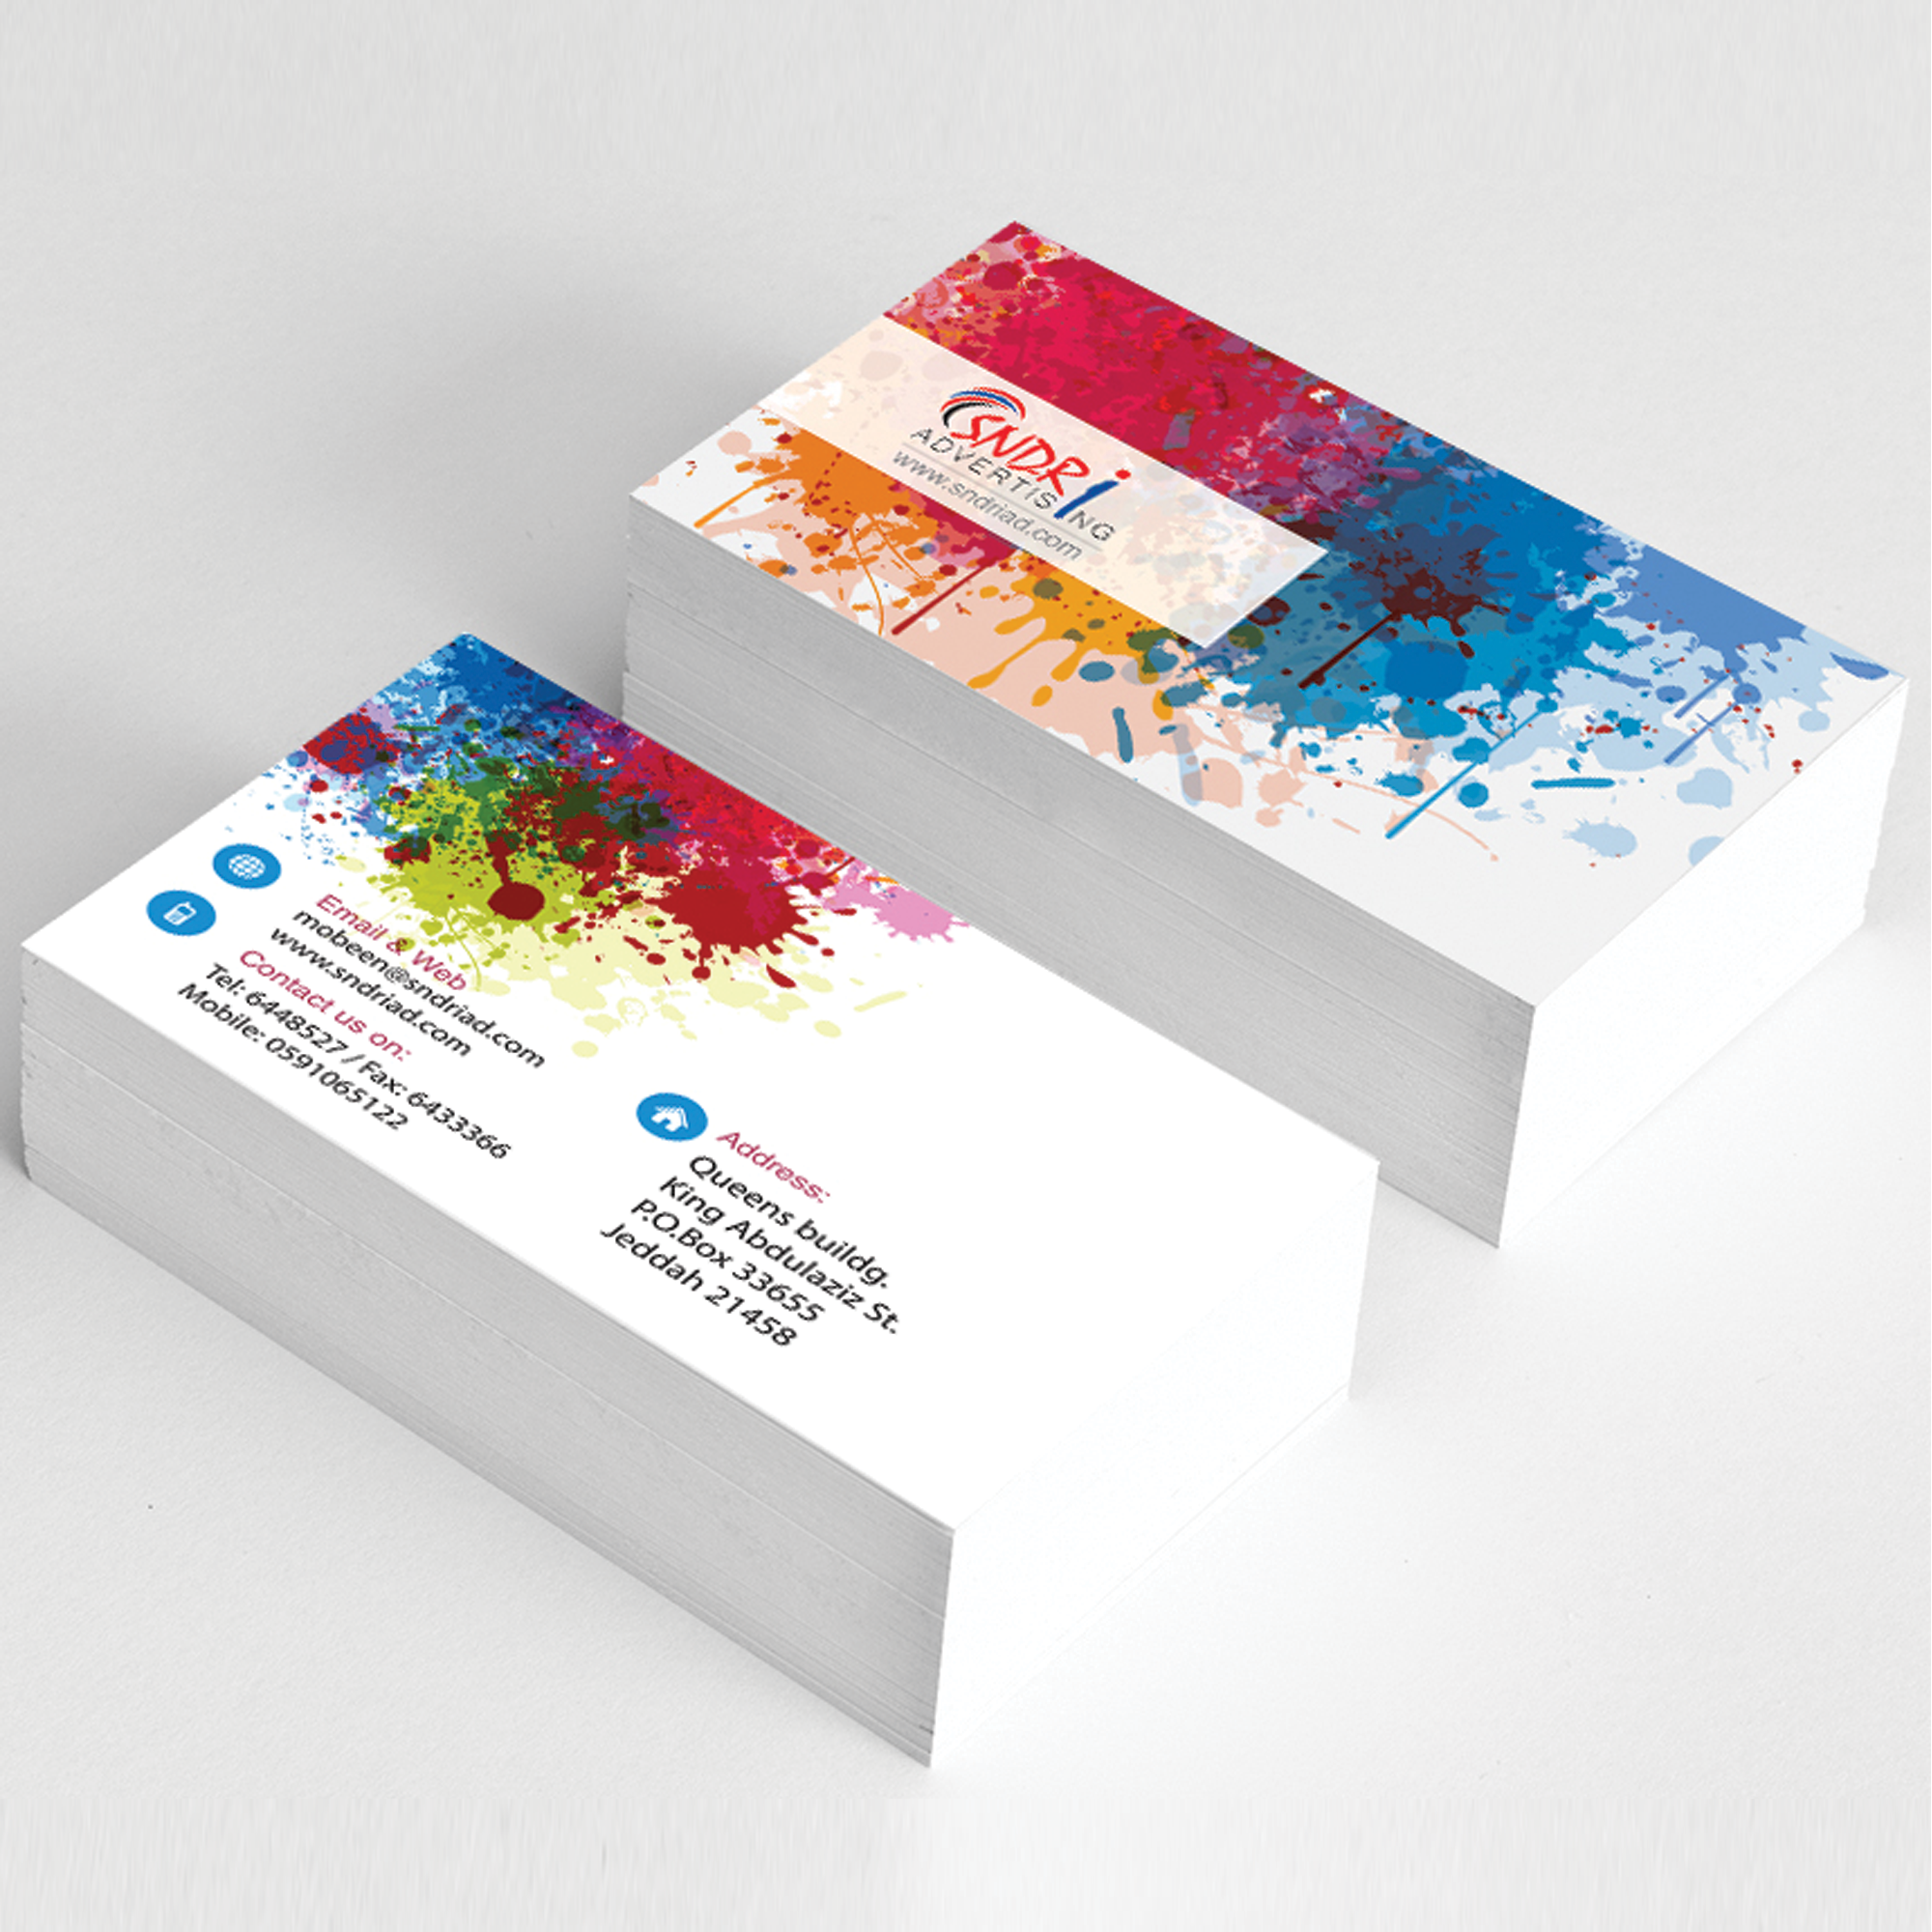 Corporate business card design print services we design all kind corporate business card design print services we design all kind of corporate business card design we have digital printers after design we print reheart